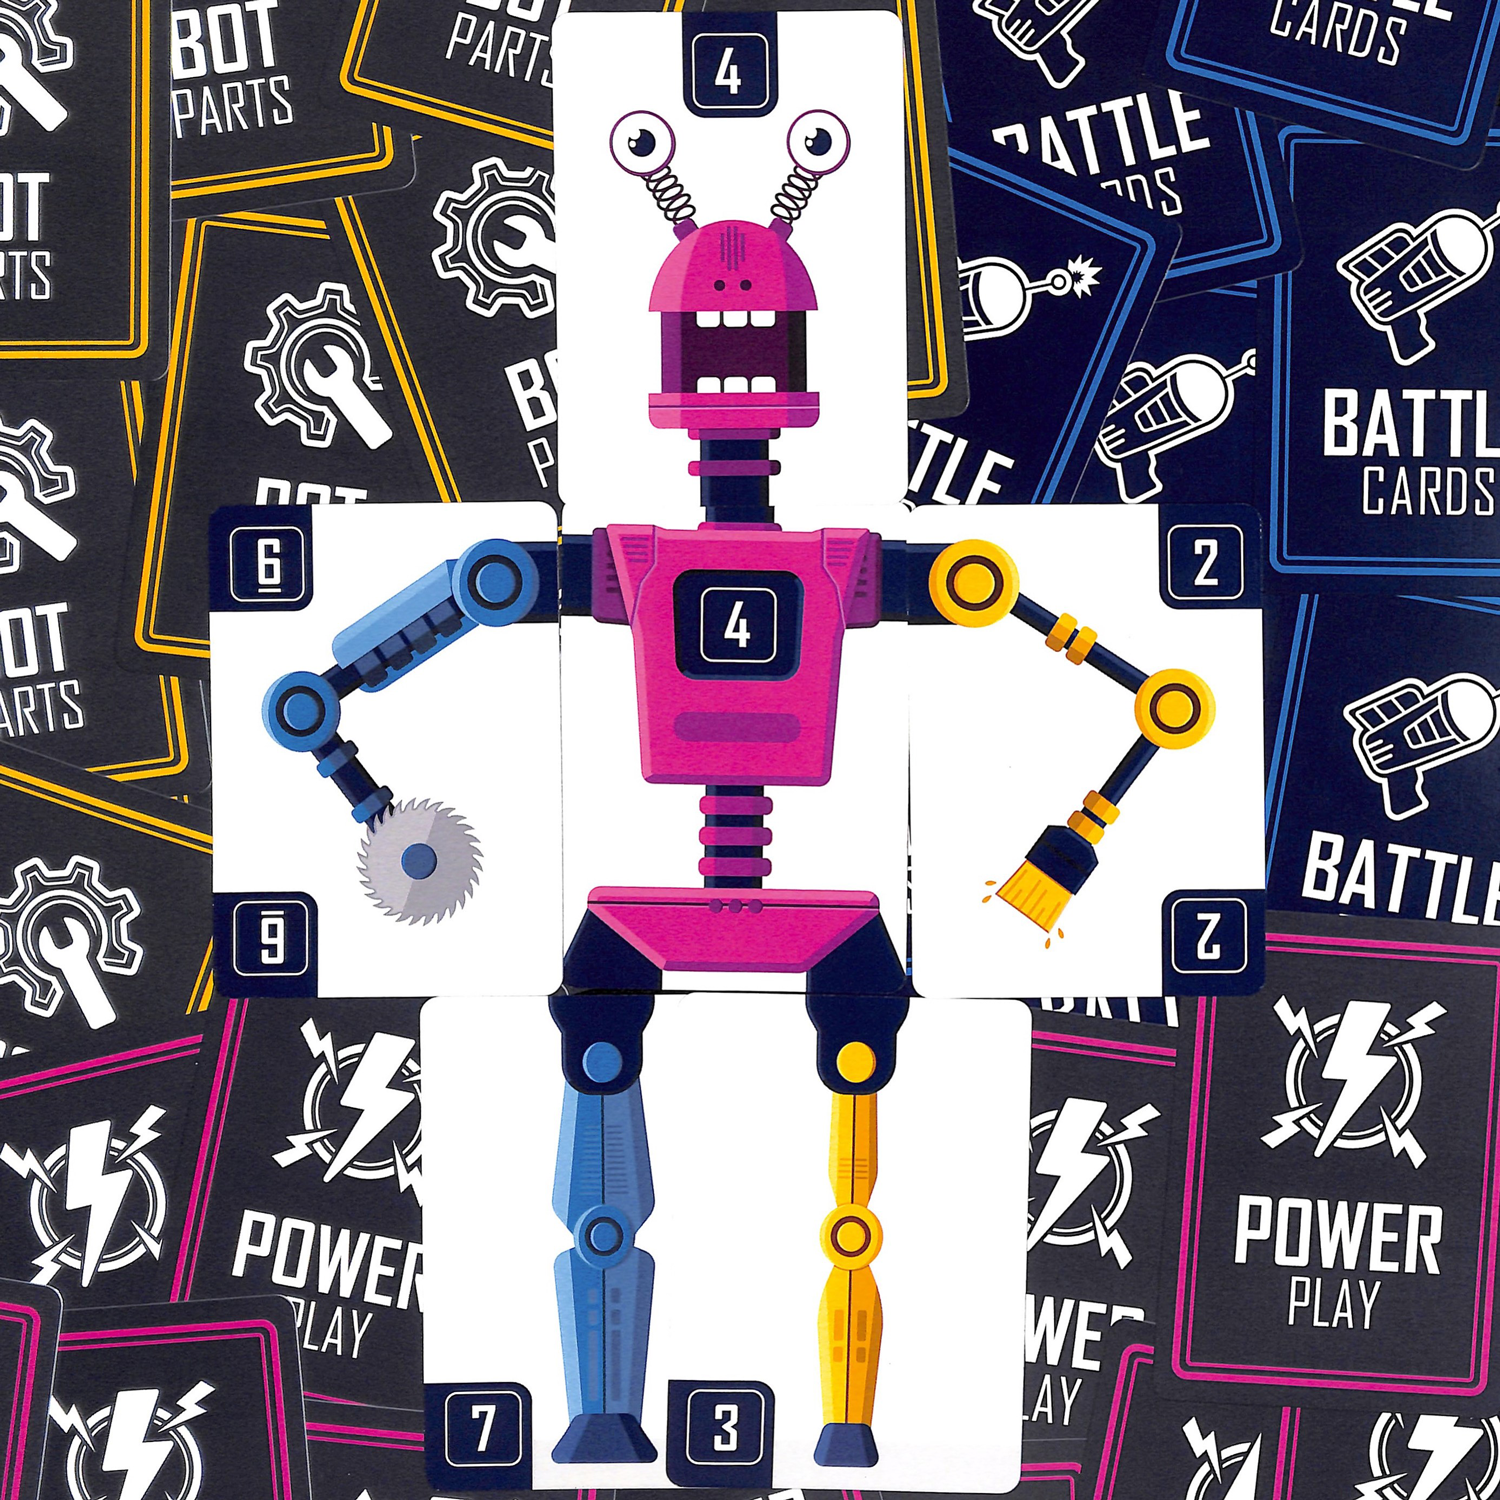 A robot prior to battle in Bots Up